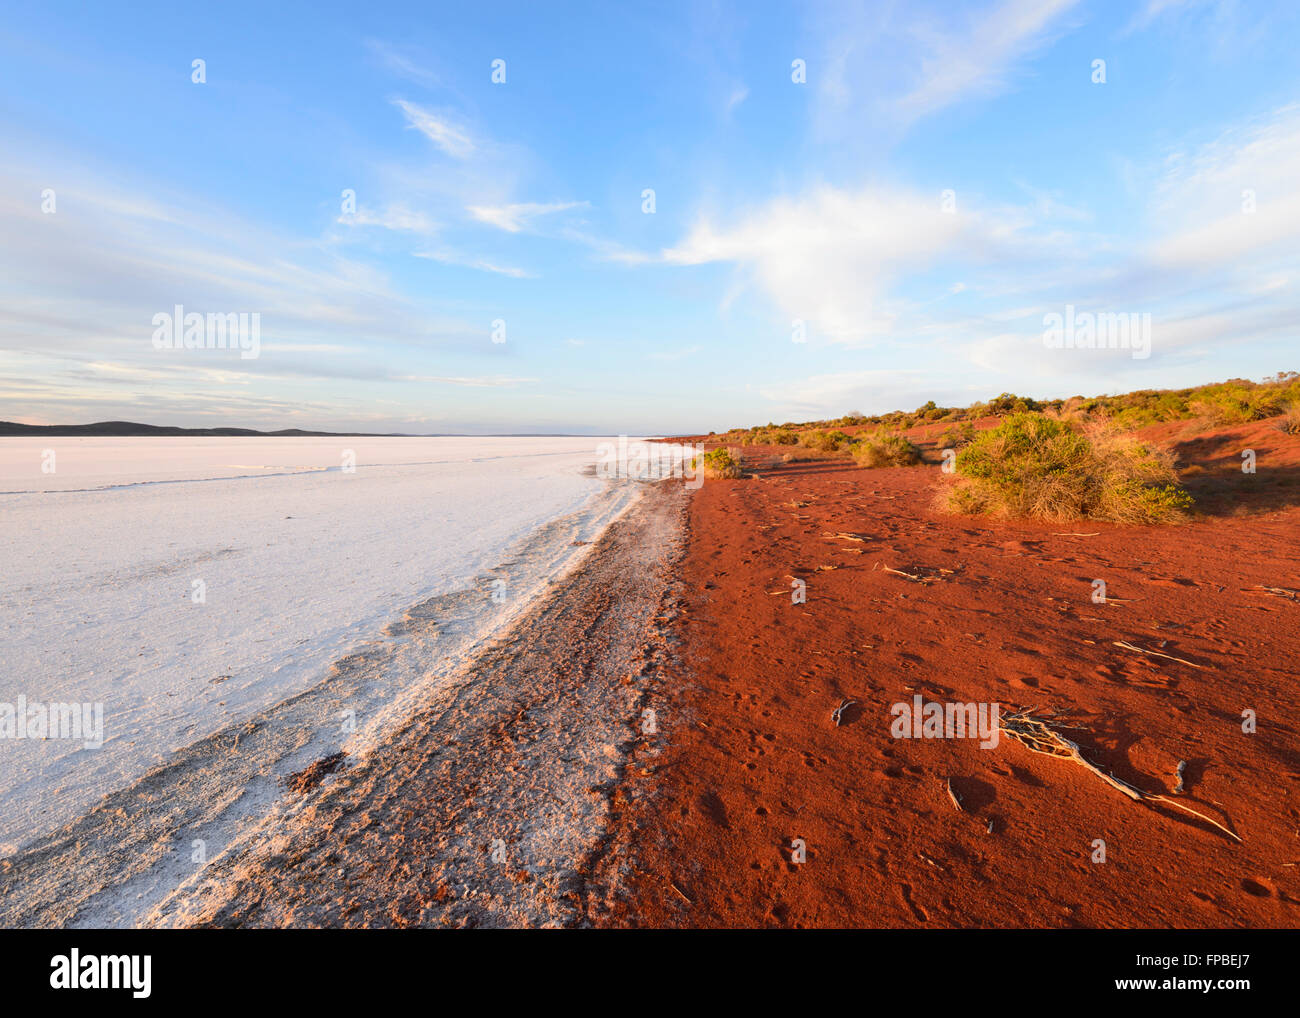 Lake Gairdner, South Australia, SA, Australia - Stock Image